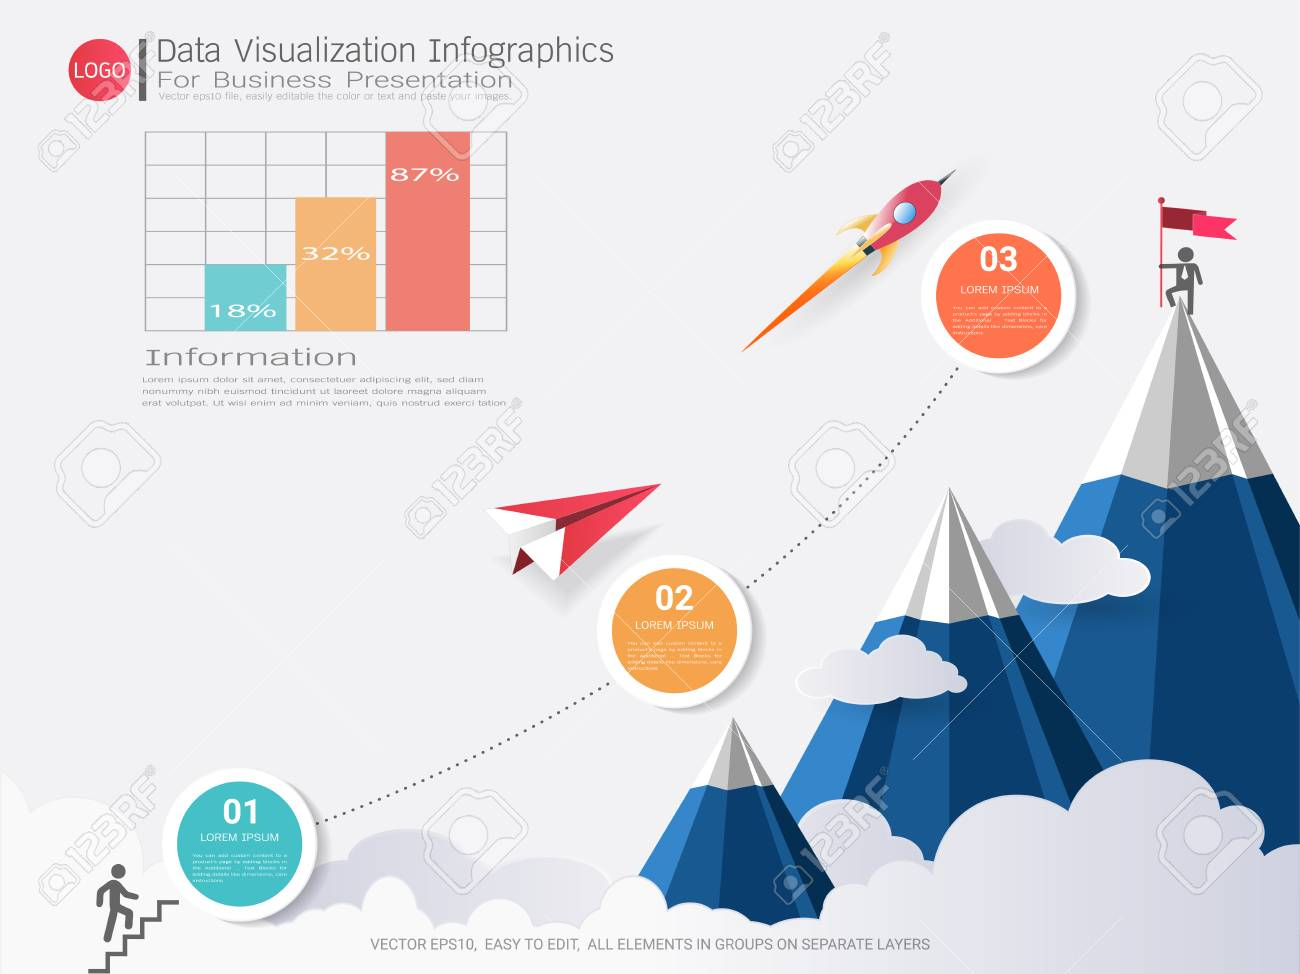 Data Visualization infographic design, Road map or strategic.. on company mission, company leadership, company registration, company goals, strategy map, company gardens map, company resources, company management, company department map, company art,